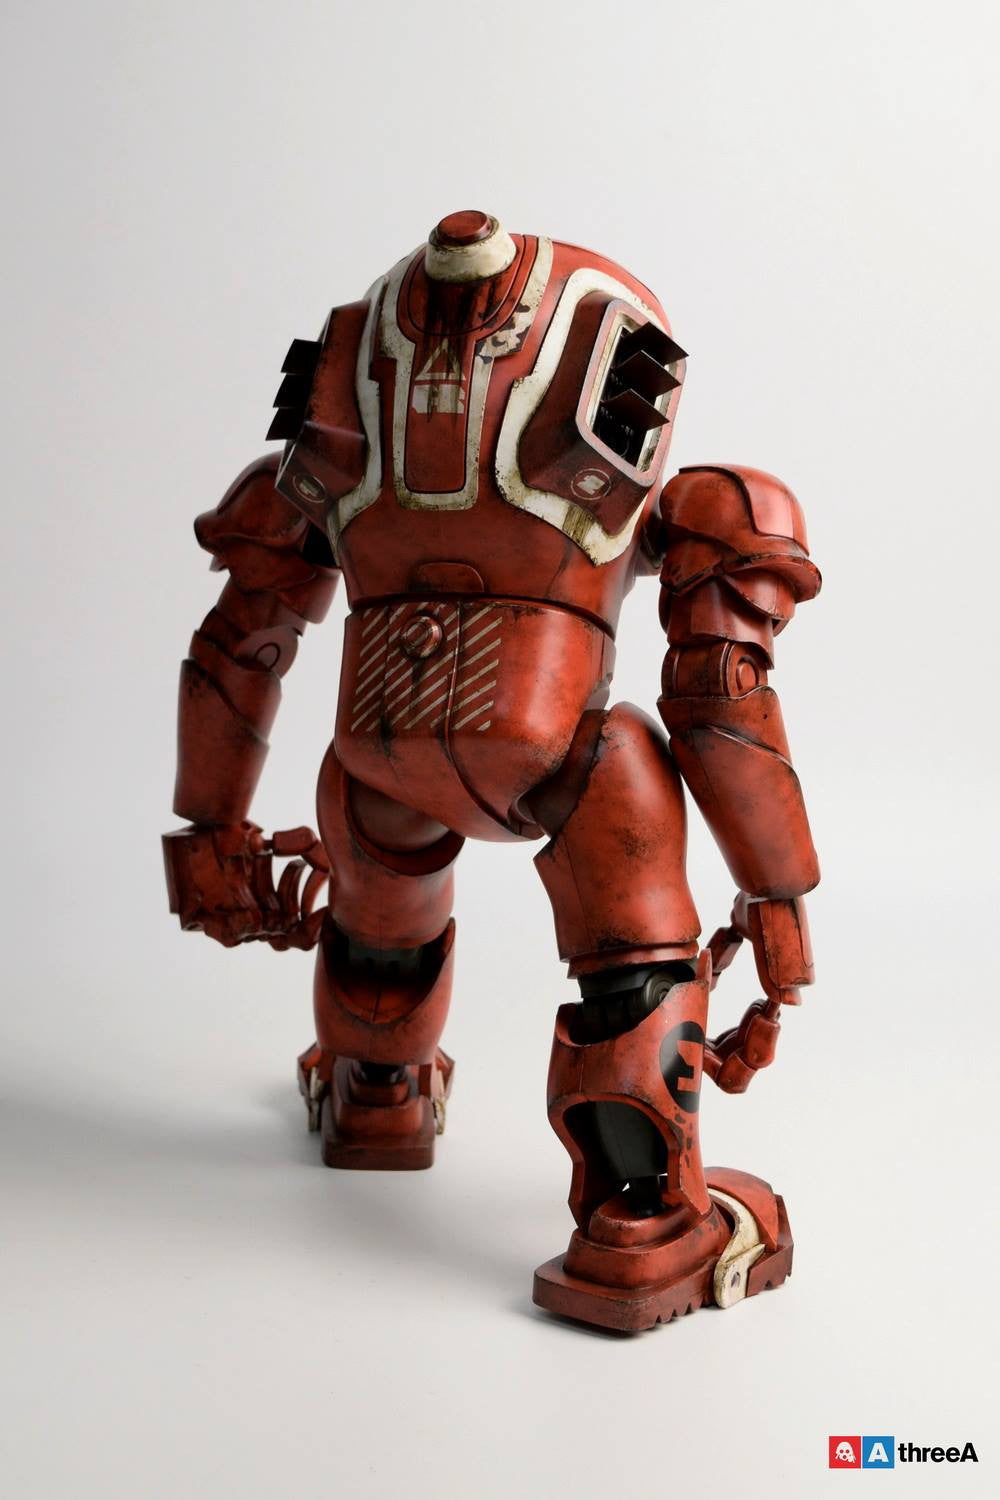 ThreeA - Evenfall - 1/6 T.O.T.E.M Thug Pugillo - Hazard Op (Red) - Marvelous Toys - 12